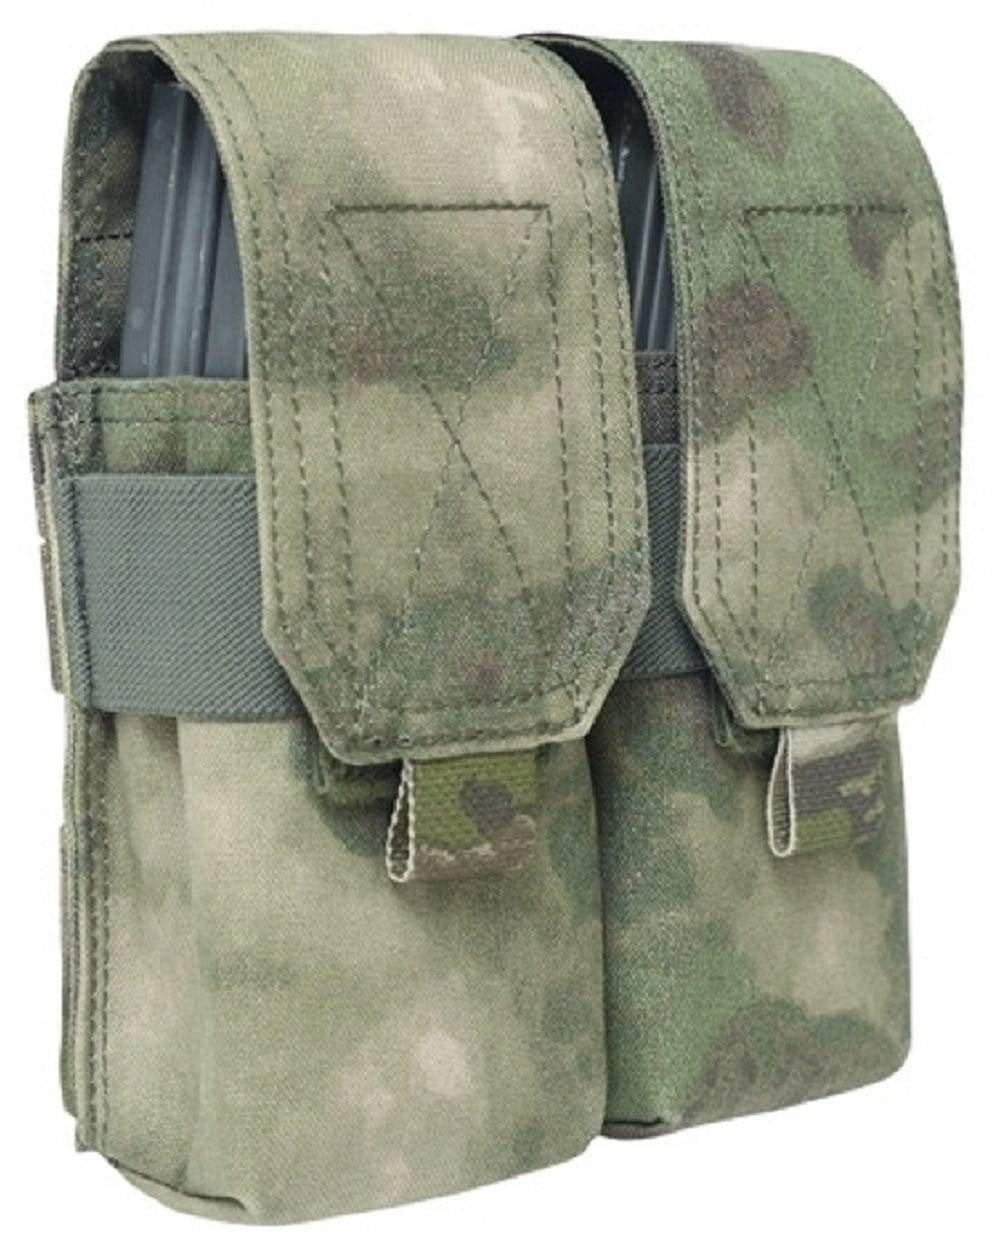 Warrior Assault Systems Double Mag Pouch with Flap M4 - CHK-SHIELD | Outdoor Army - Tactical Gear Shop